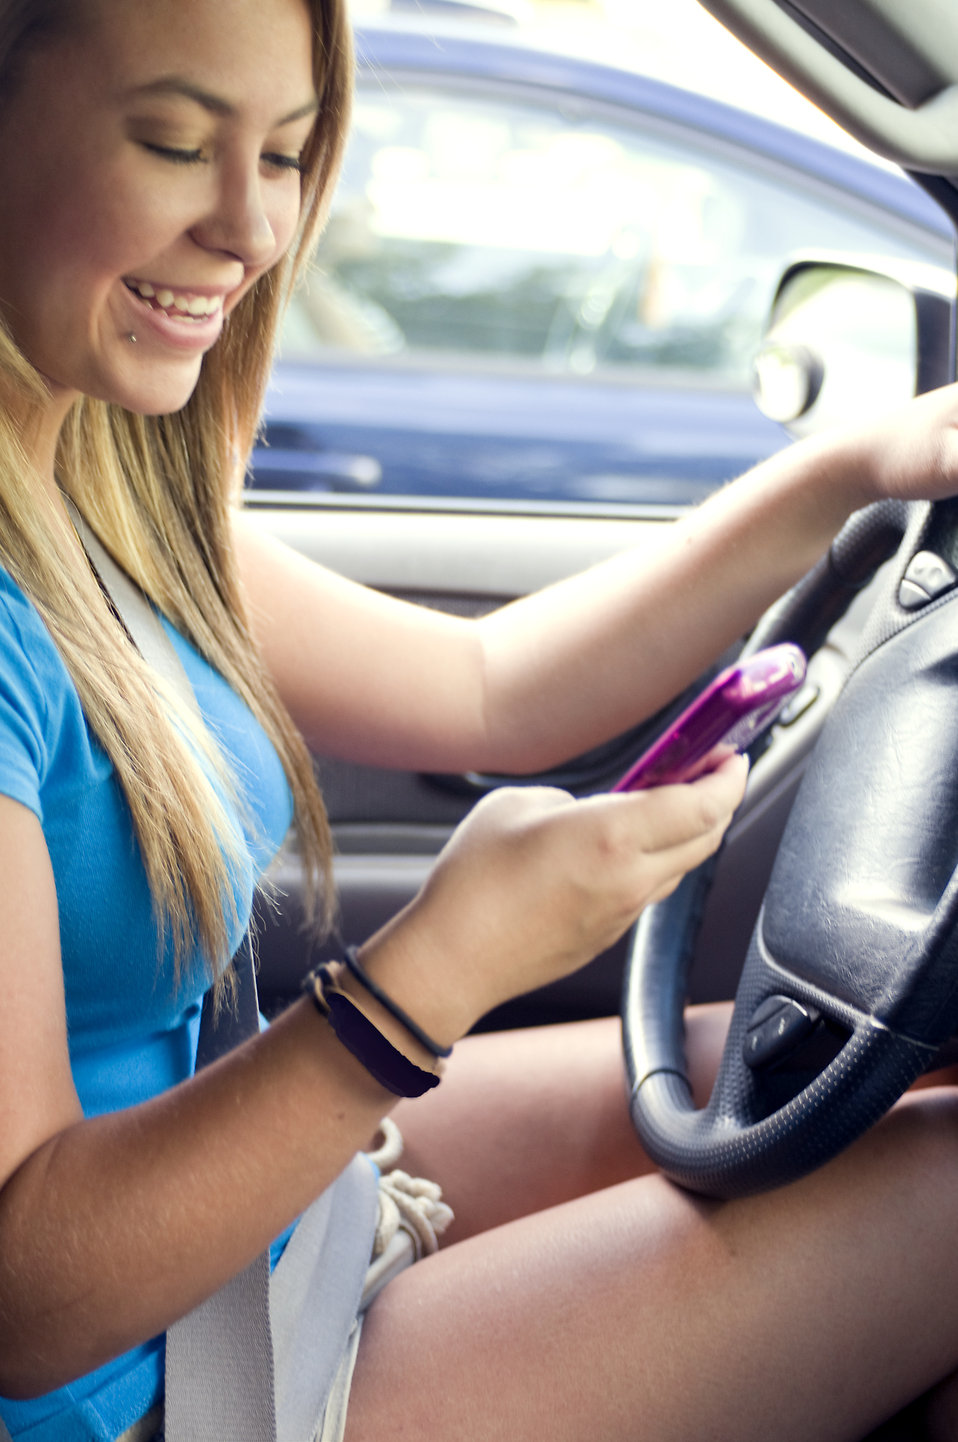 Teen In Car While Texting And Driving